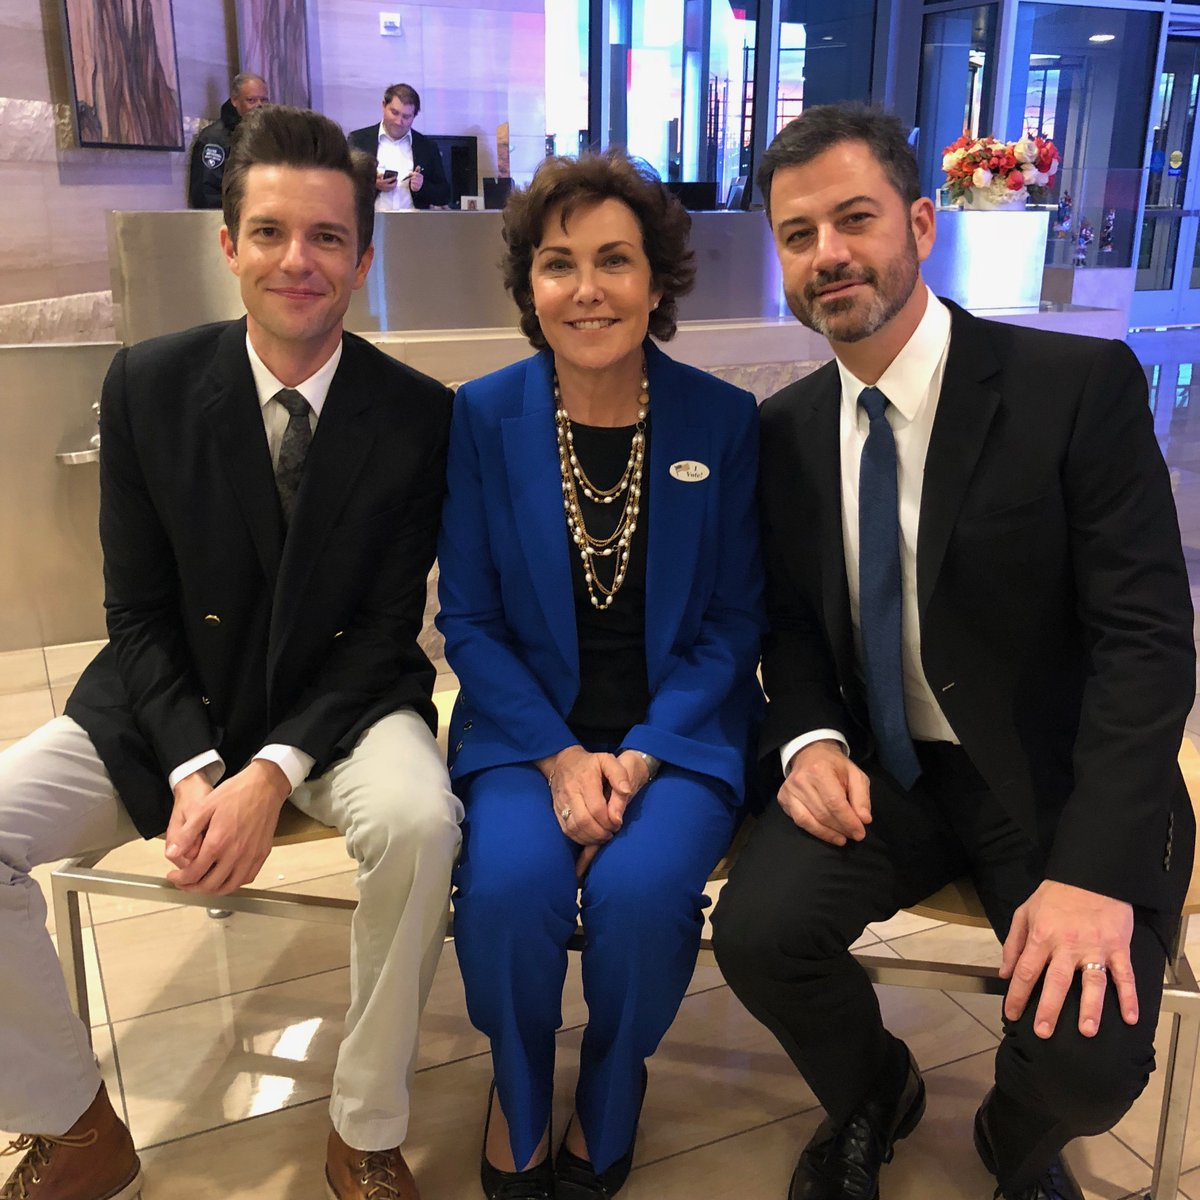 Rallying for Nevada with @BrandonFlowers & @RosenforNevada in #Vegas to protect our health care. #NVSen #VOTE